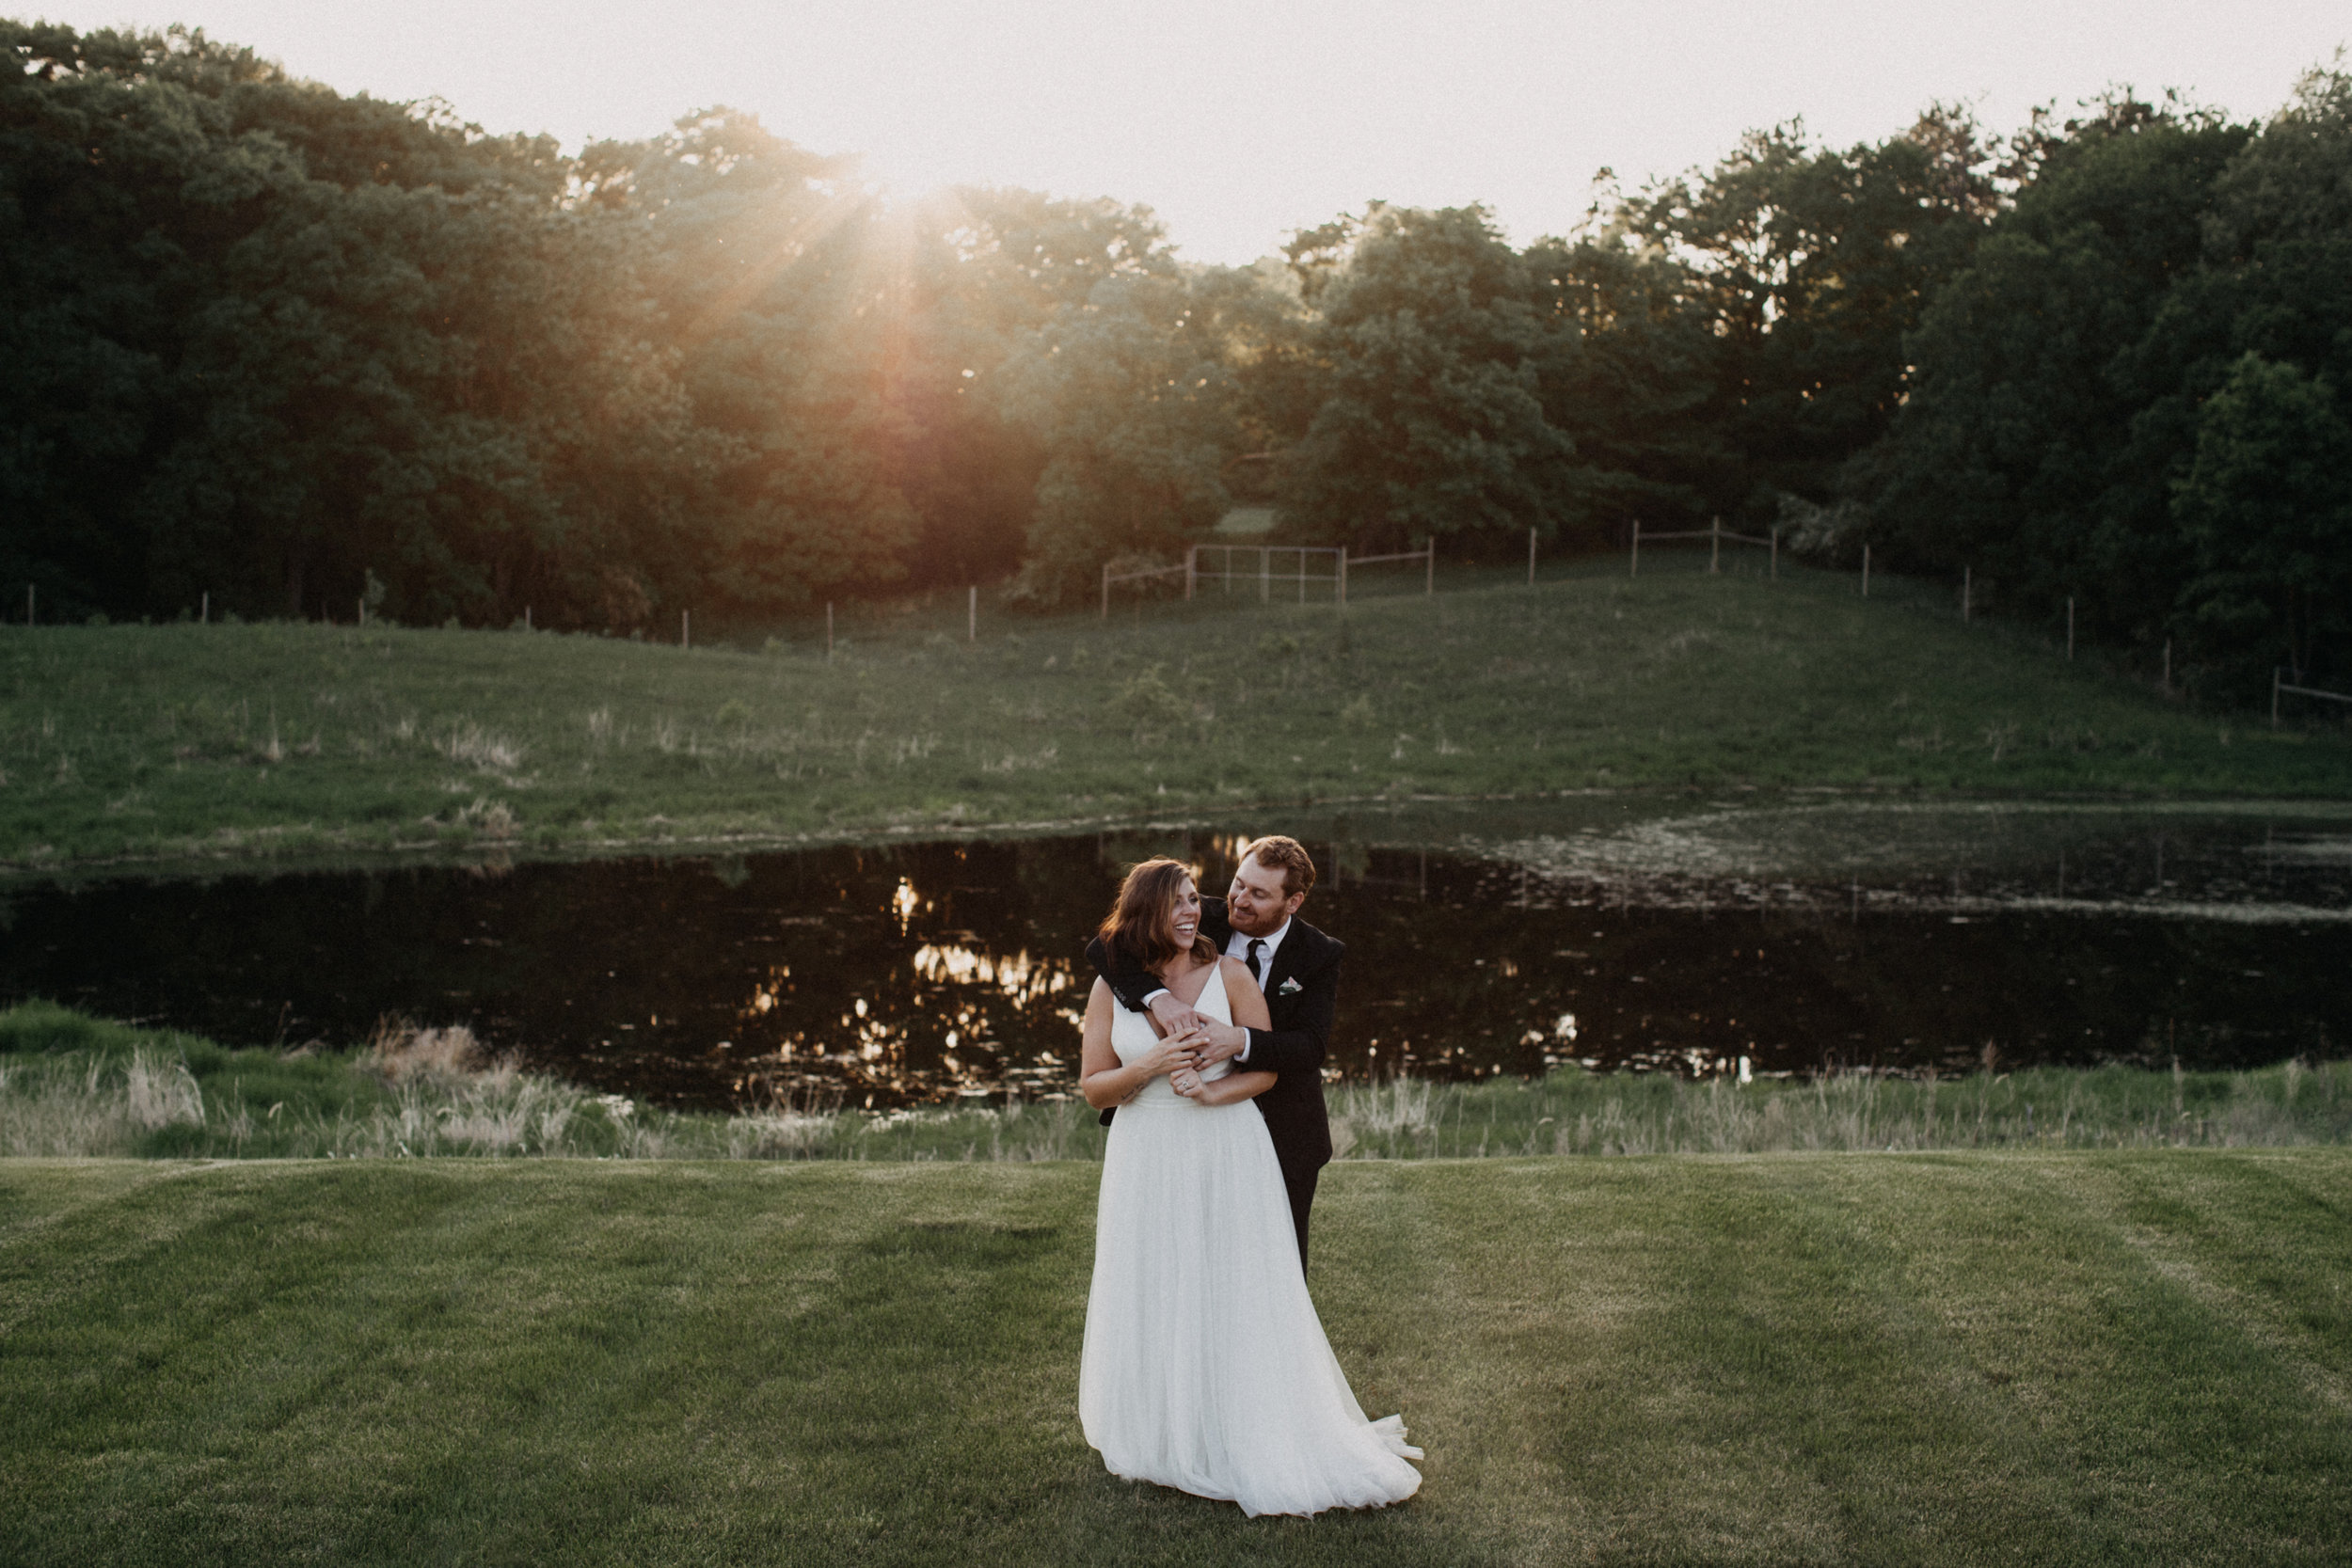 Bride and groom during sunset at Minnesota winery wedding